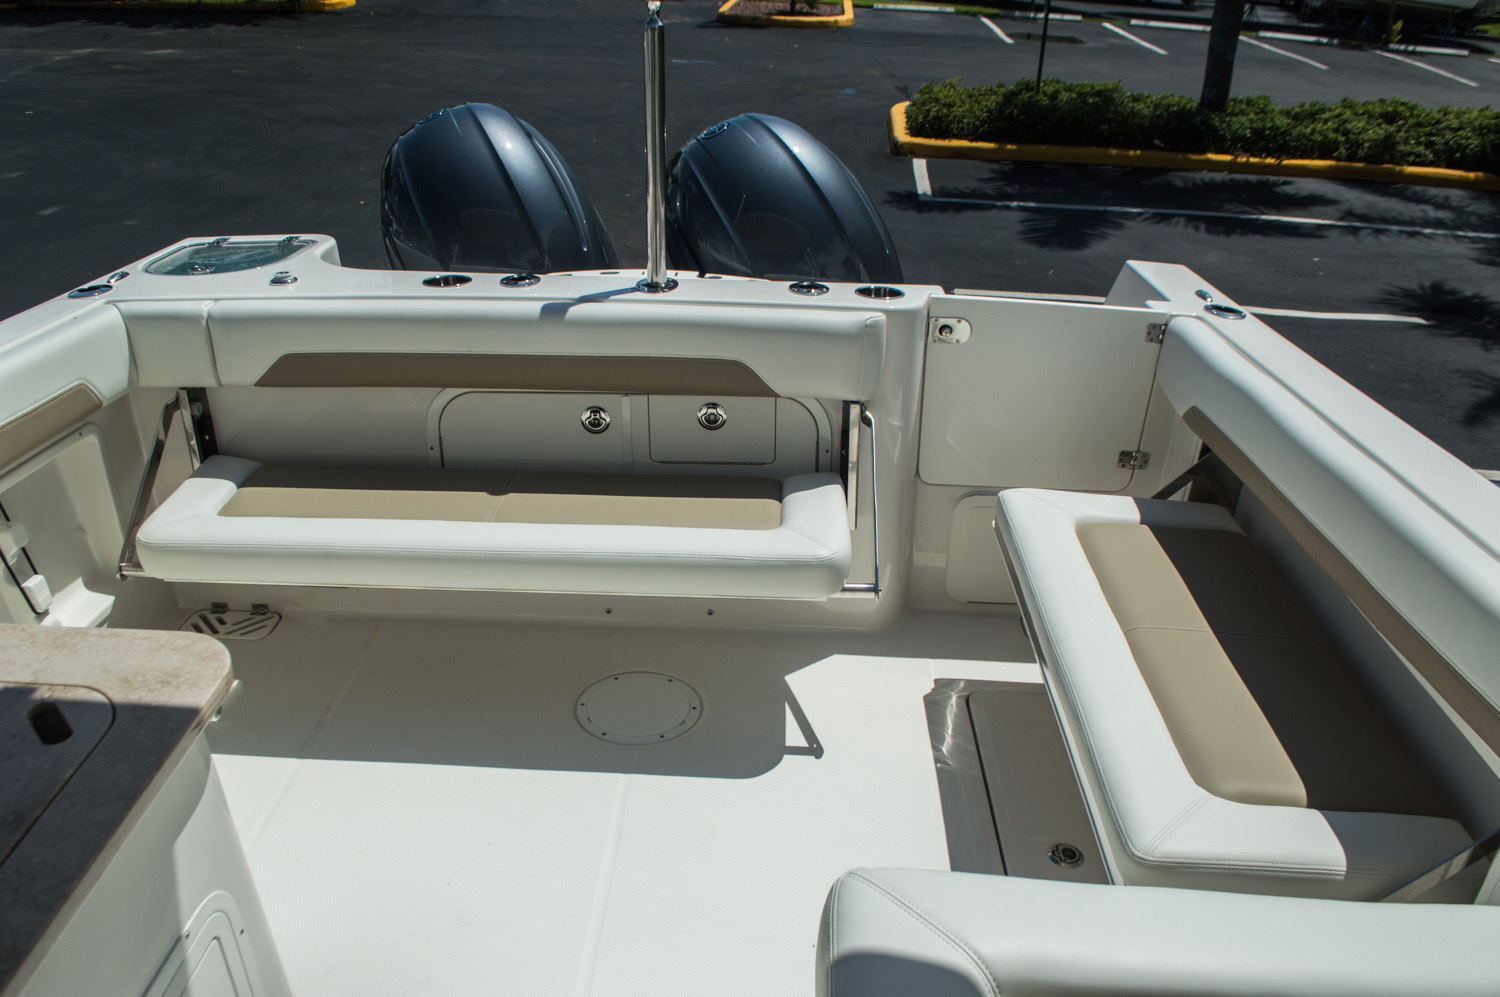 Thumbnail 45 for New 2016 Sailfish 275 Dual Console boat for sale in West Palm Beach, FL